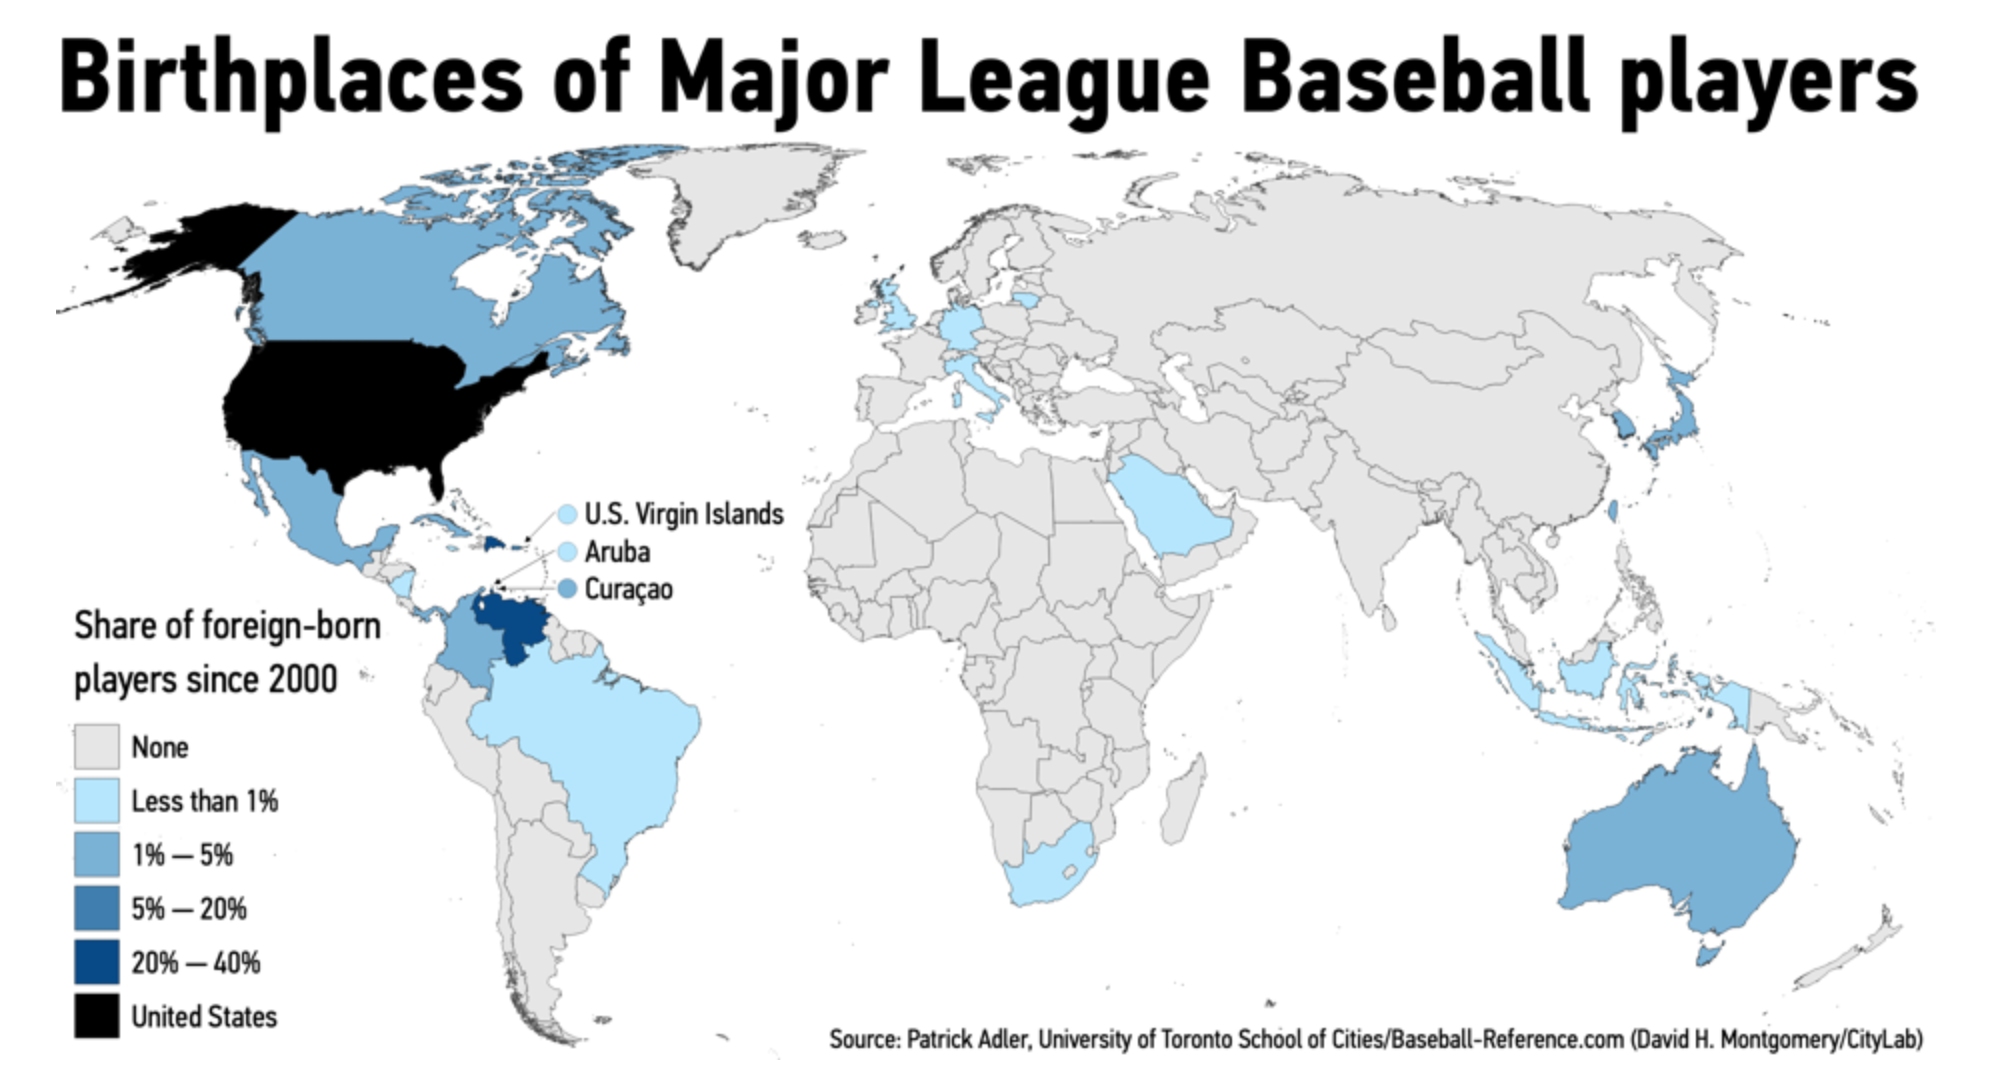 There are quite a few players from countries around the Caribbean.